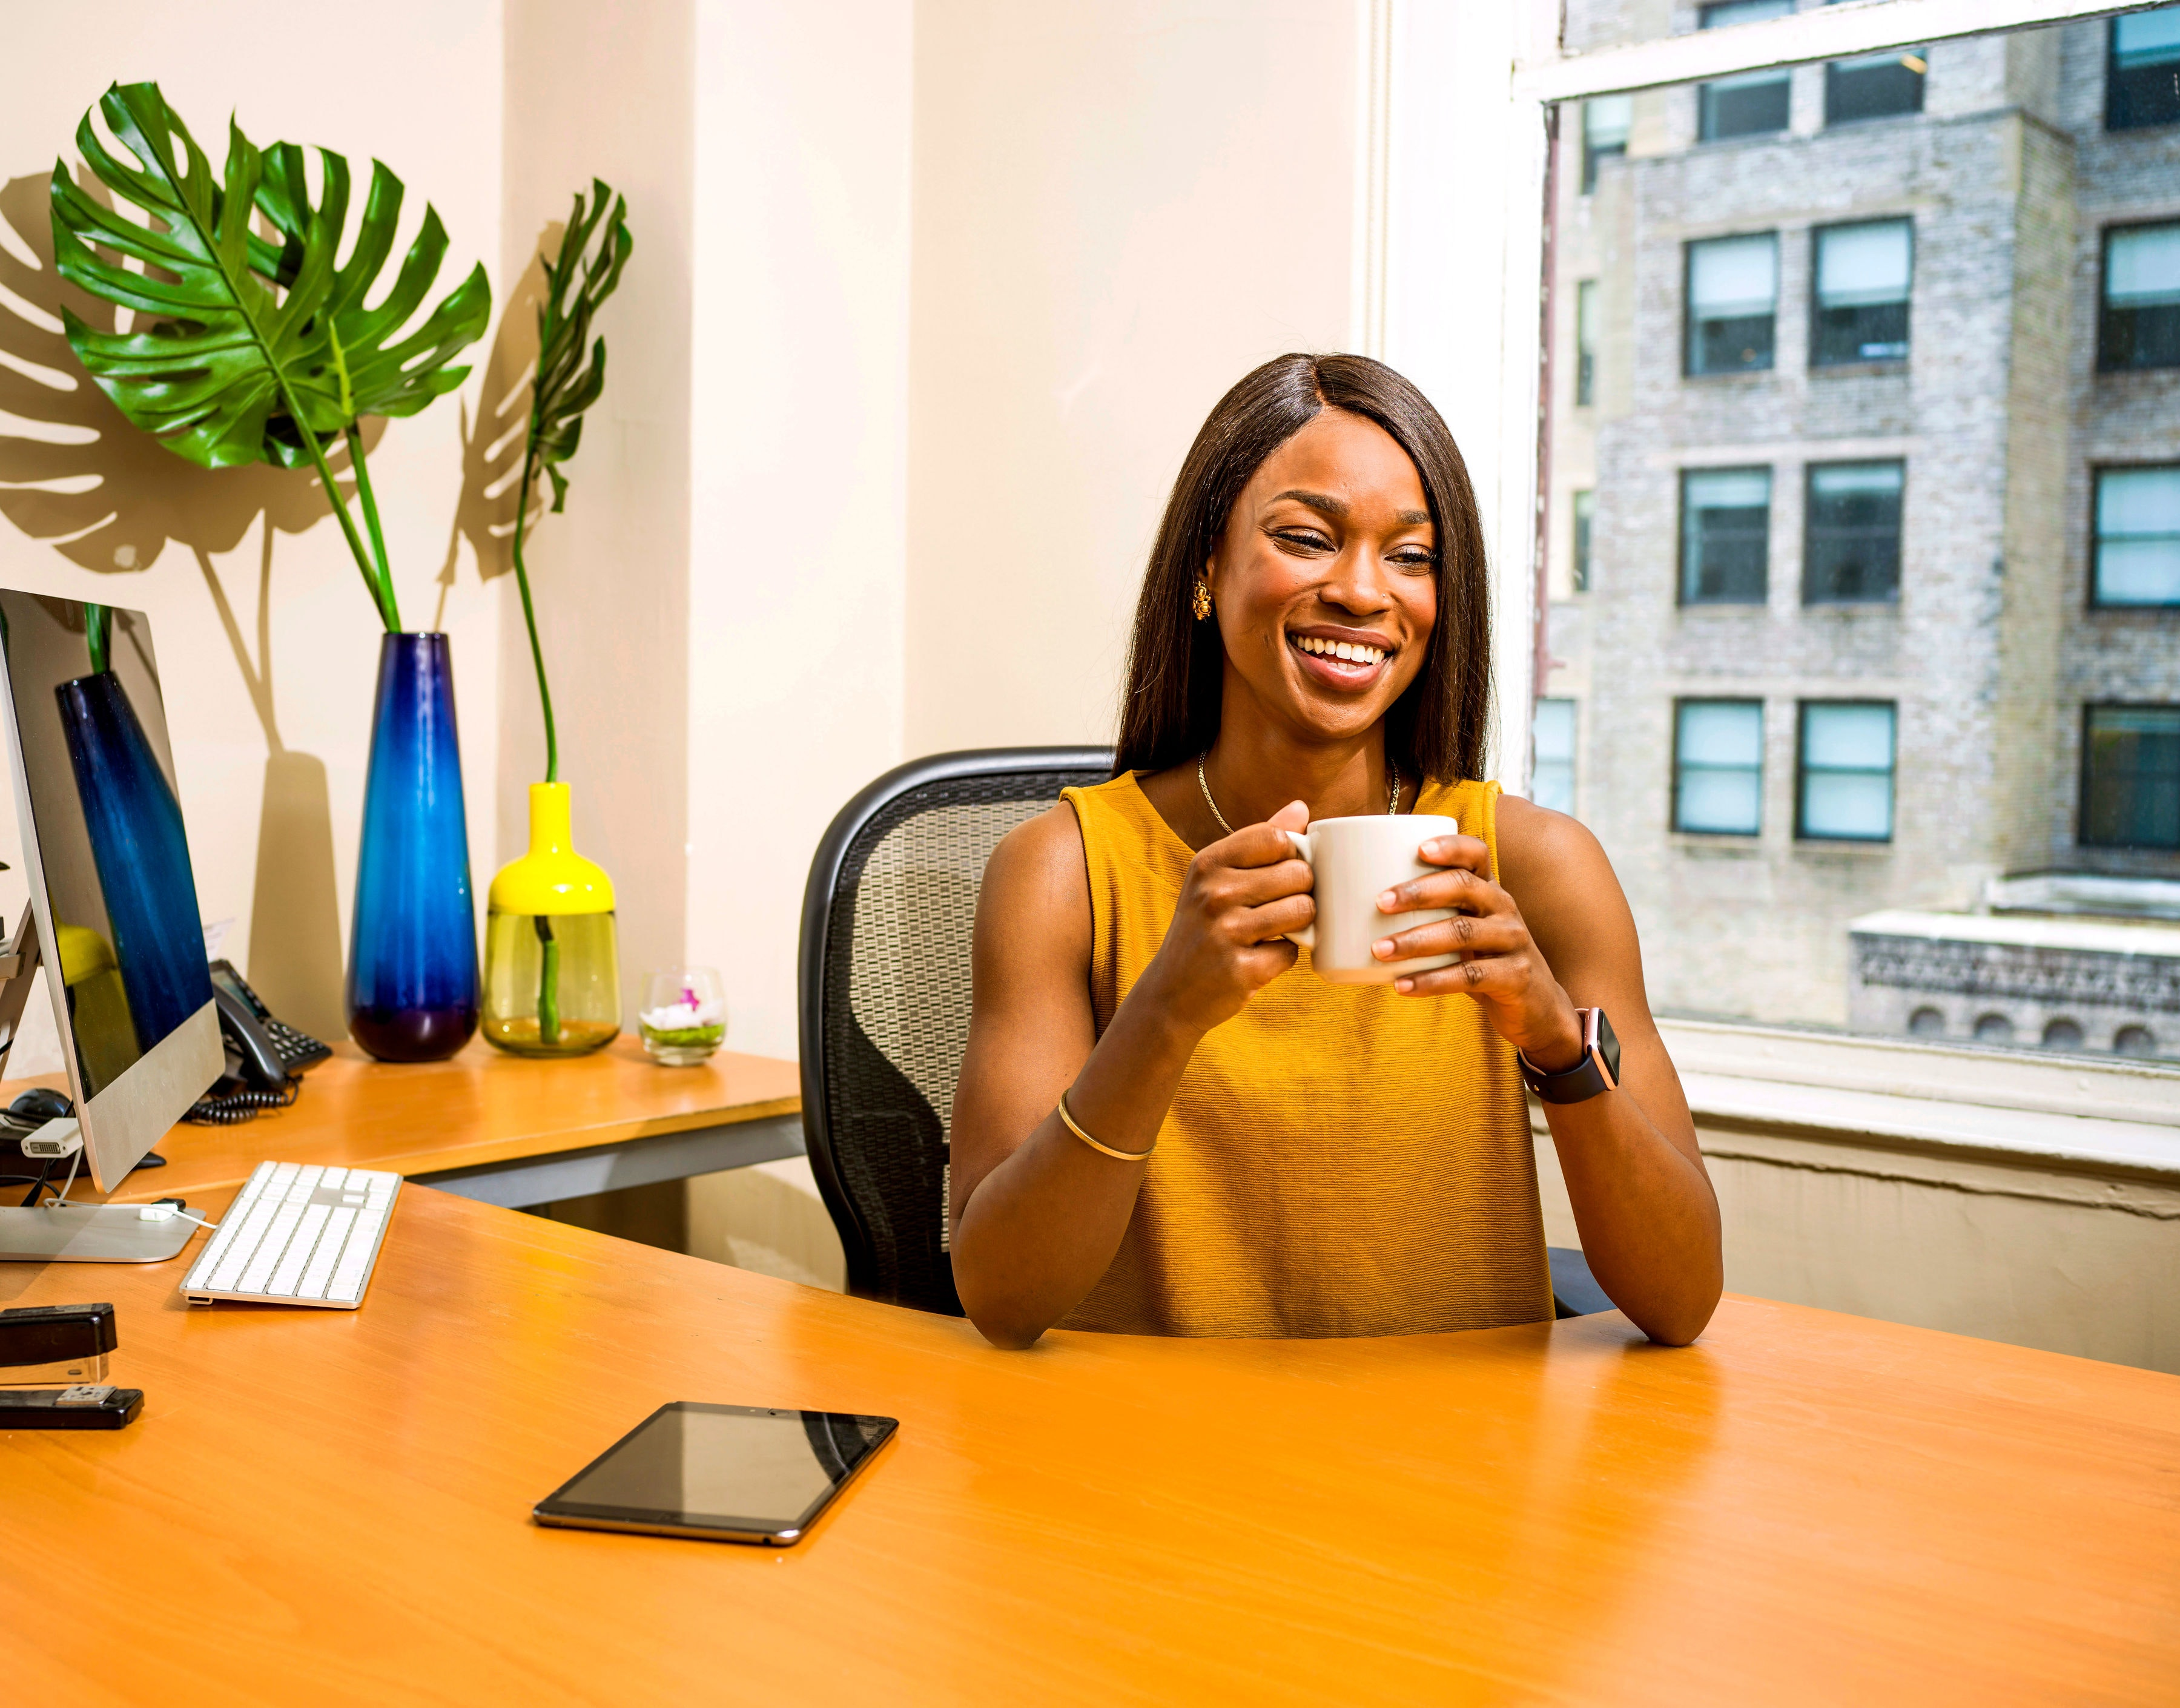 Black business women smiling because she is using EXOD the automated Facebook marketing platform.